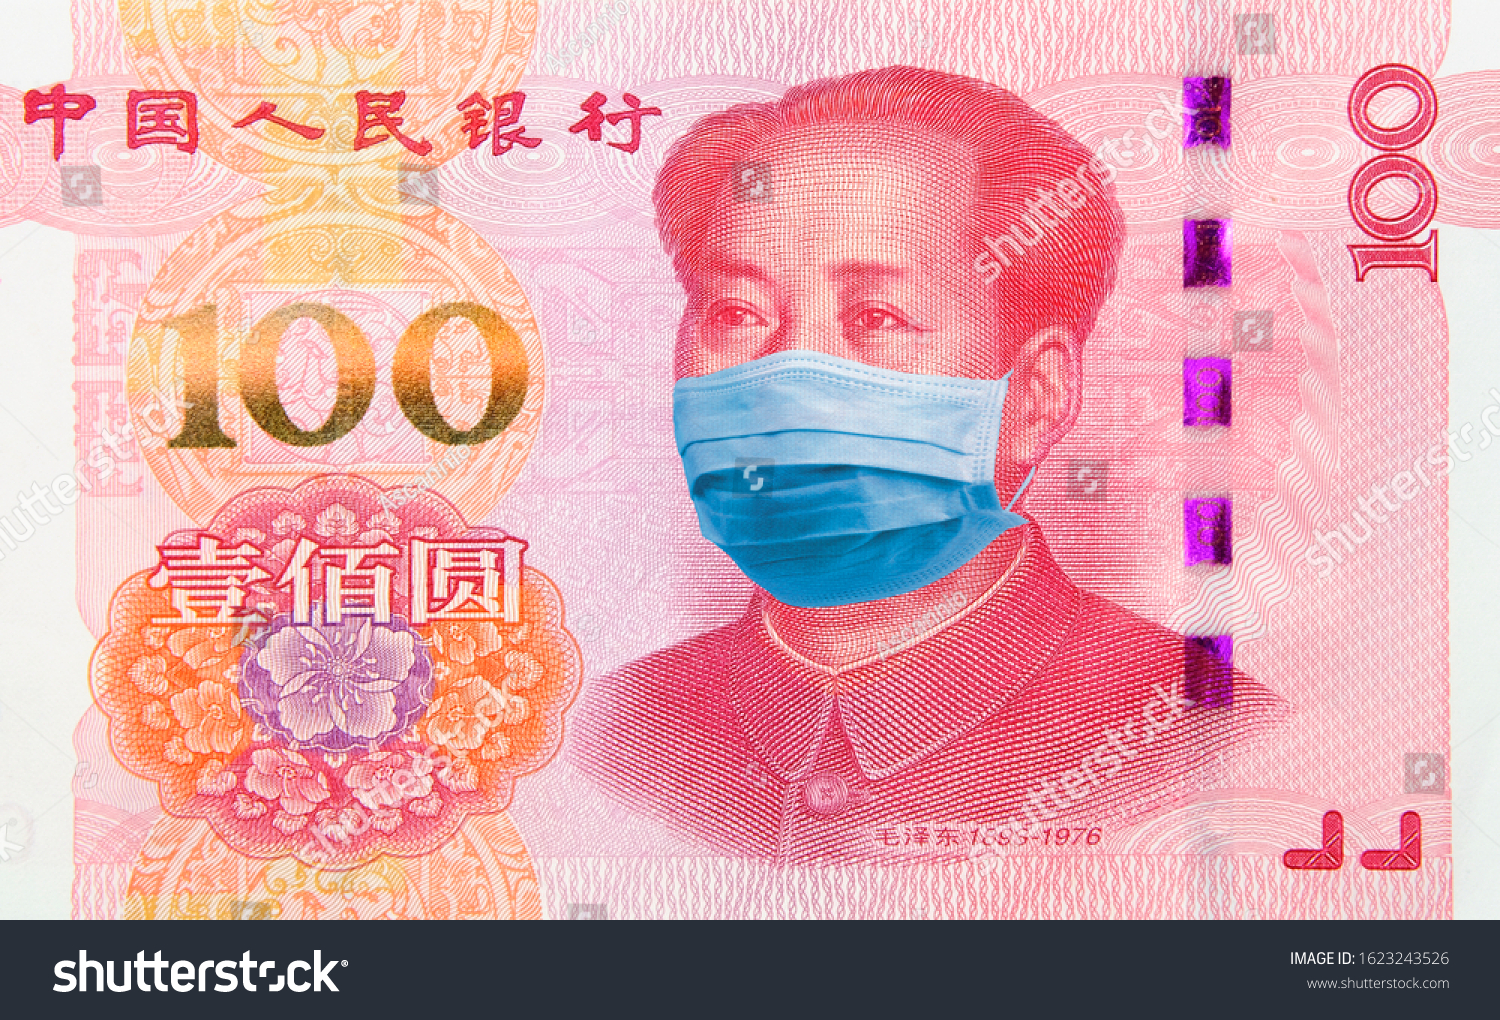 Coronavirus COVID-19 Wuhan illness. Concept: Quarantine in China, 100 Yuan banknote with face mask. Economy and financial markets affected by corona virus outbreak and pandemic fears. Digital montage. #1623243526